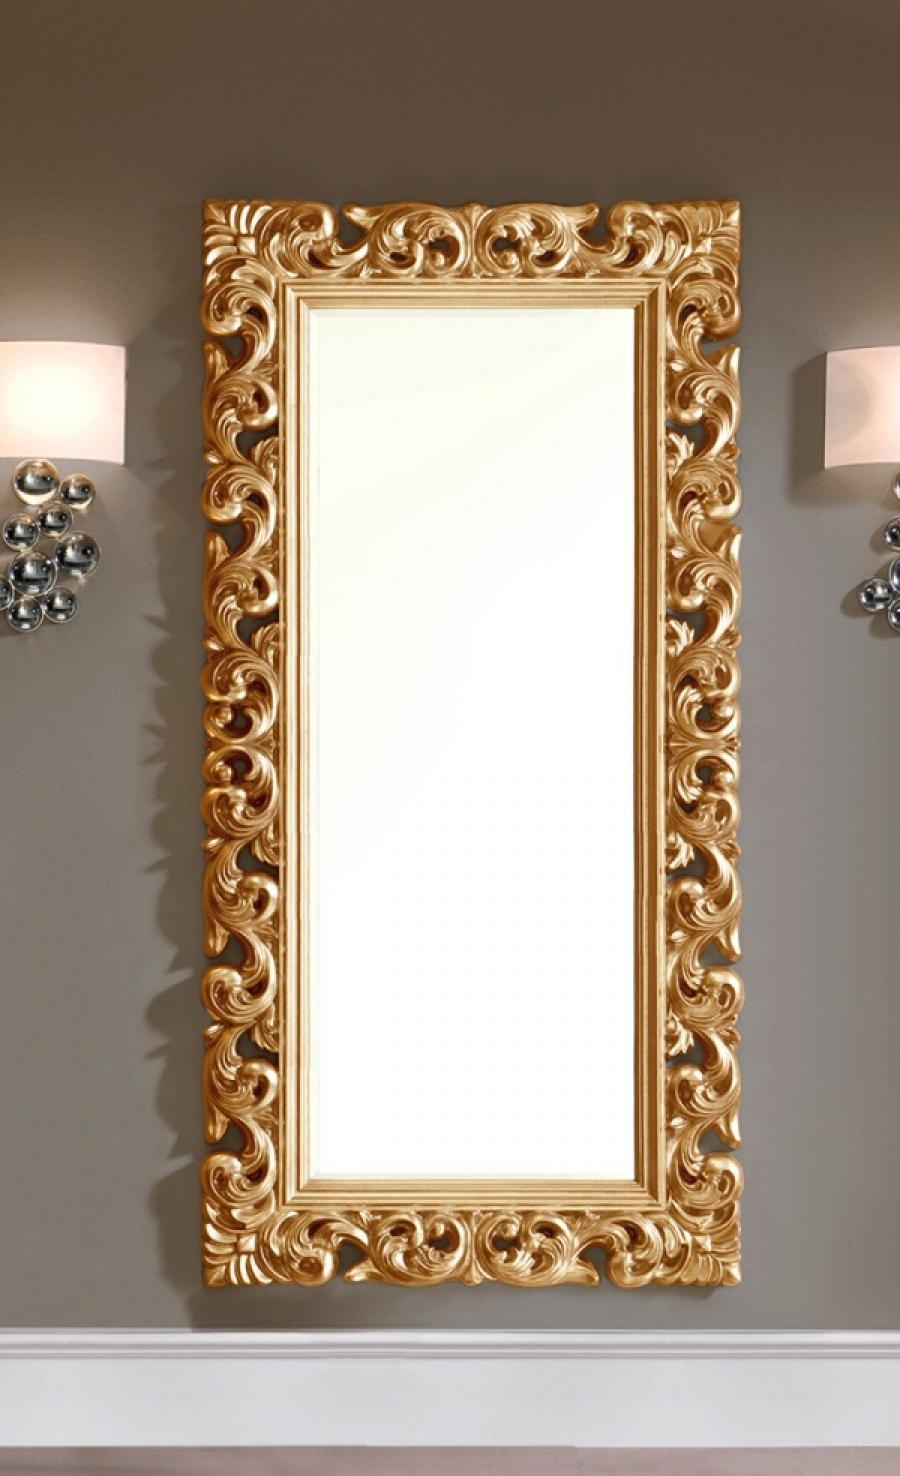 Large Modern Ornate Mirror In Gold Colour Finish With Ornate Large Mirror (Image 9 of 15)